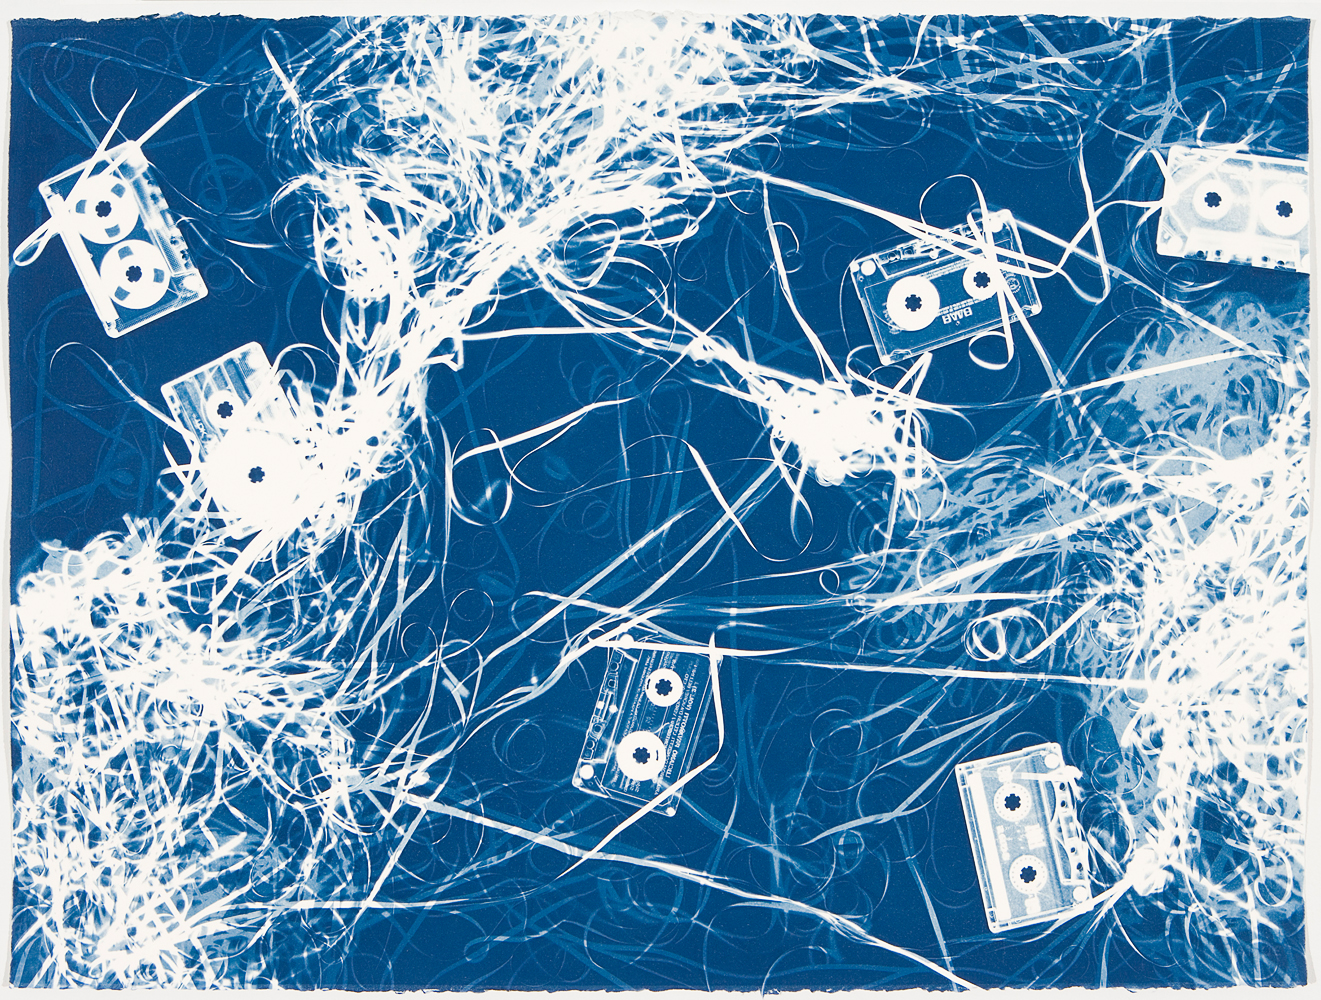 Untitled (Luciano Pavorotti, Halo and Four Mix Tapes II), 2008.                                                              Experimenting with two forms of media that have become obsolete, Marclay created large-scale cyanotypes of cassette tapes strewn and arranged in expressionist compositions.